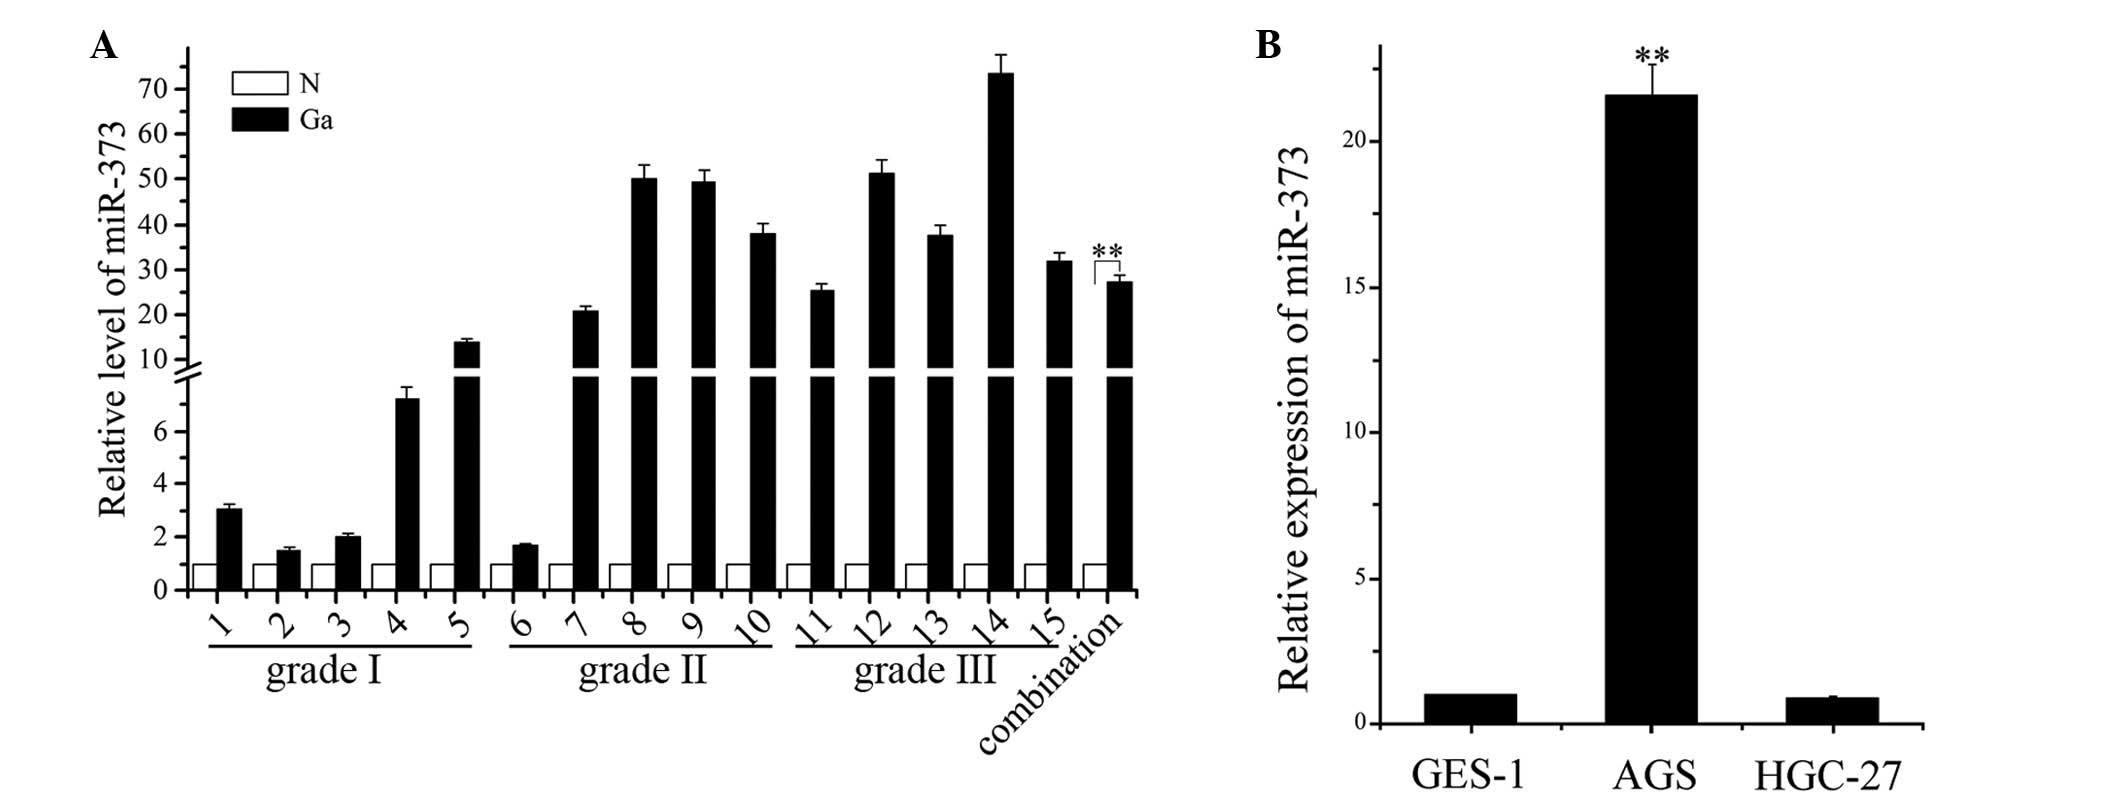 human gastric adenocarcinoma cell line essay For providing some experimental basis in establishing malignant phenotypic reversed indexes of gastric carcinoma cells, human gastric adenocarcinoma cell line mgc80-3 was induced by dbcampin vitro to appraise the effect of gastric carcinoma cell differentiation by chemical inducers.